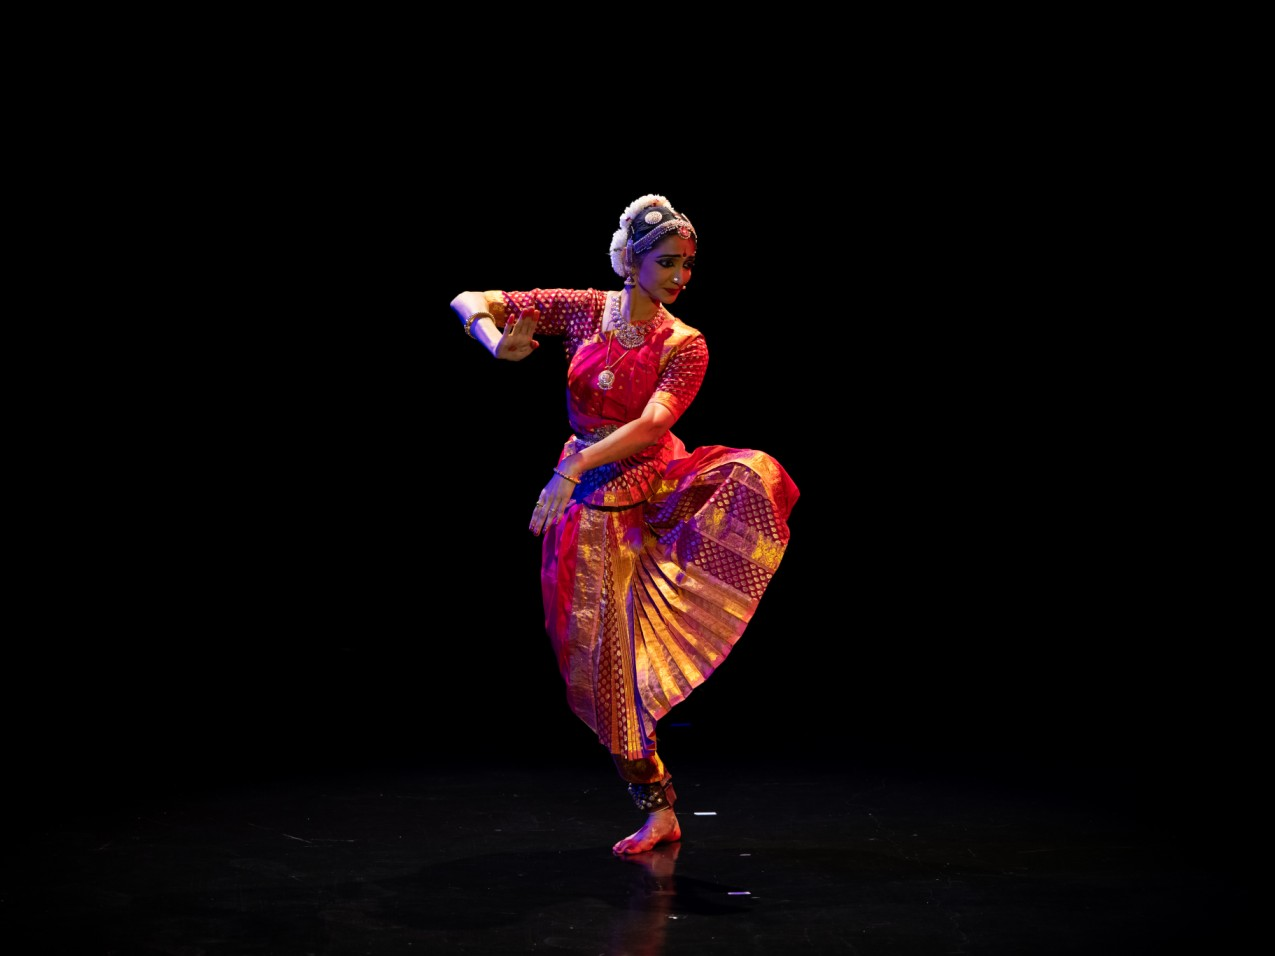 Apsaras Arts said it was honoured, as Dr Roshni is not only a student of Shrimathi Neila Sathyalingam but also the recipient of the Bharatha Kala Mani award from Apsaras Arts in 2016. Photo Courtesy: Apsaras Arts